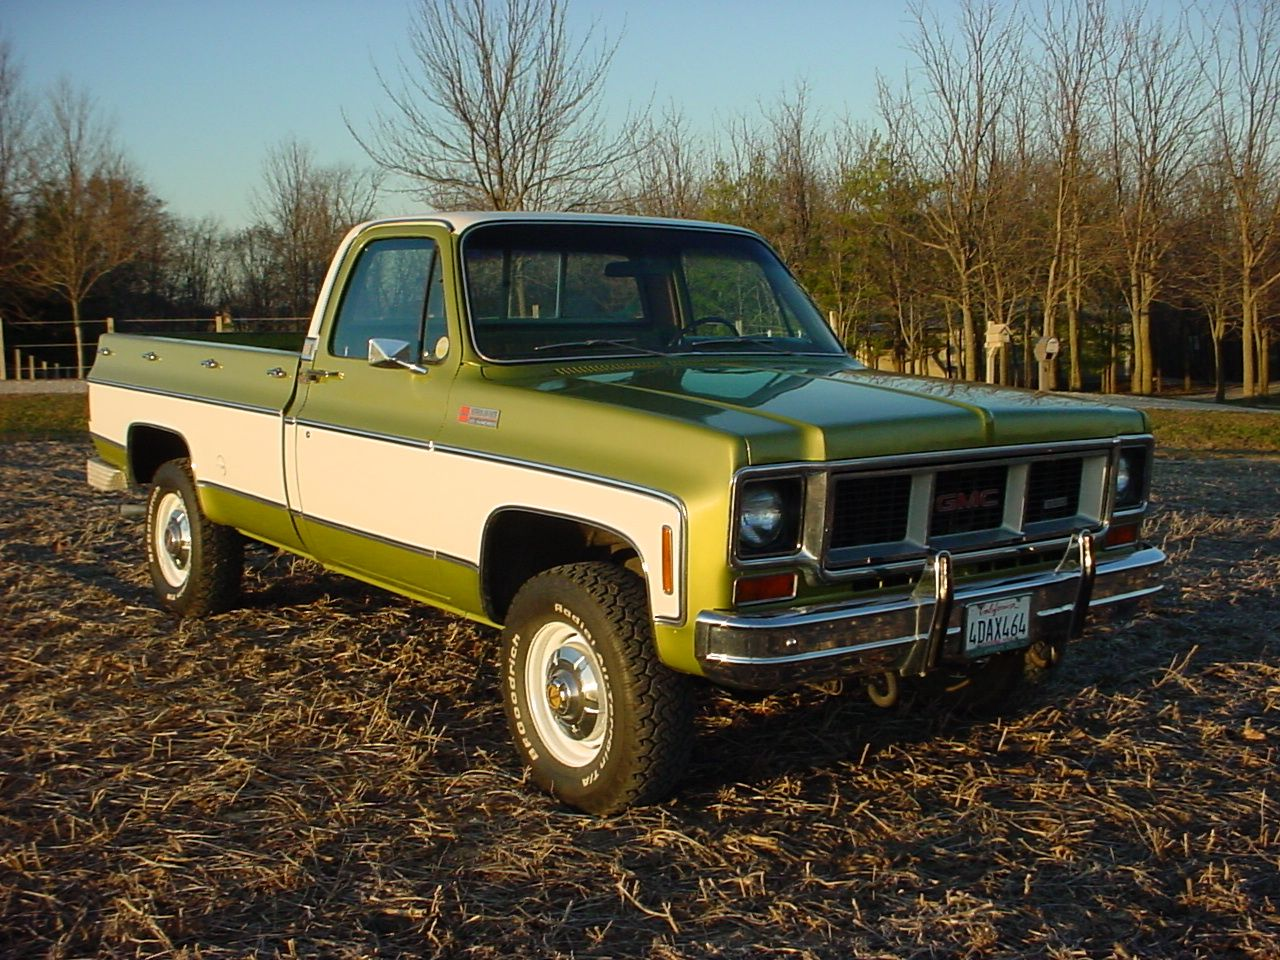 1973 GMC Sierra Camper Special - 3/4 ton with a 1 ton rear axle, my truck  was blue two-tone and is still running at my Mom's farm with over 250k  miles after ...